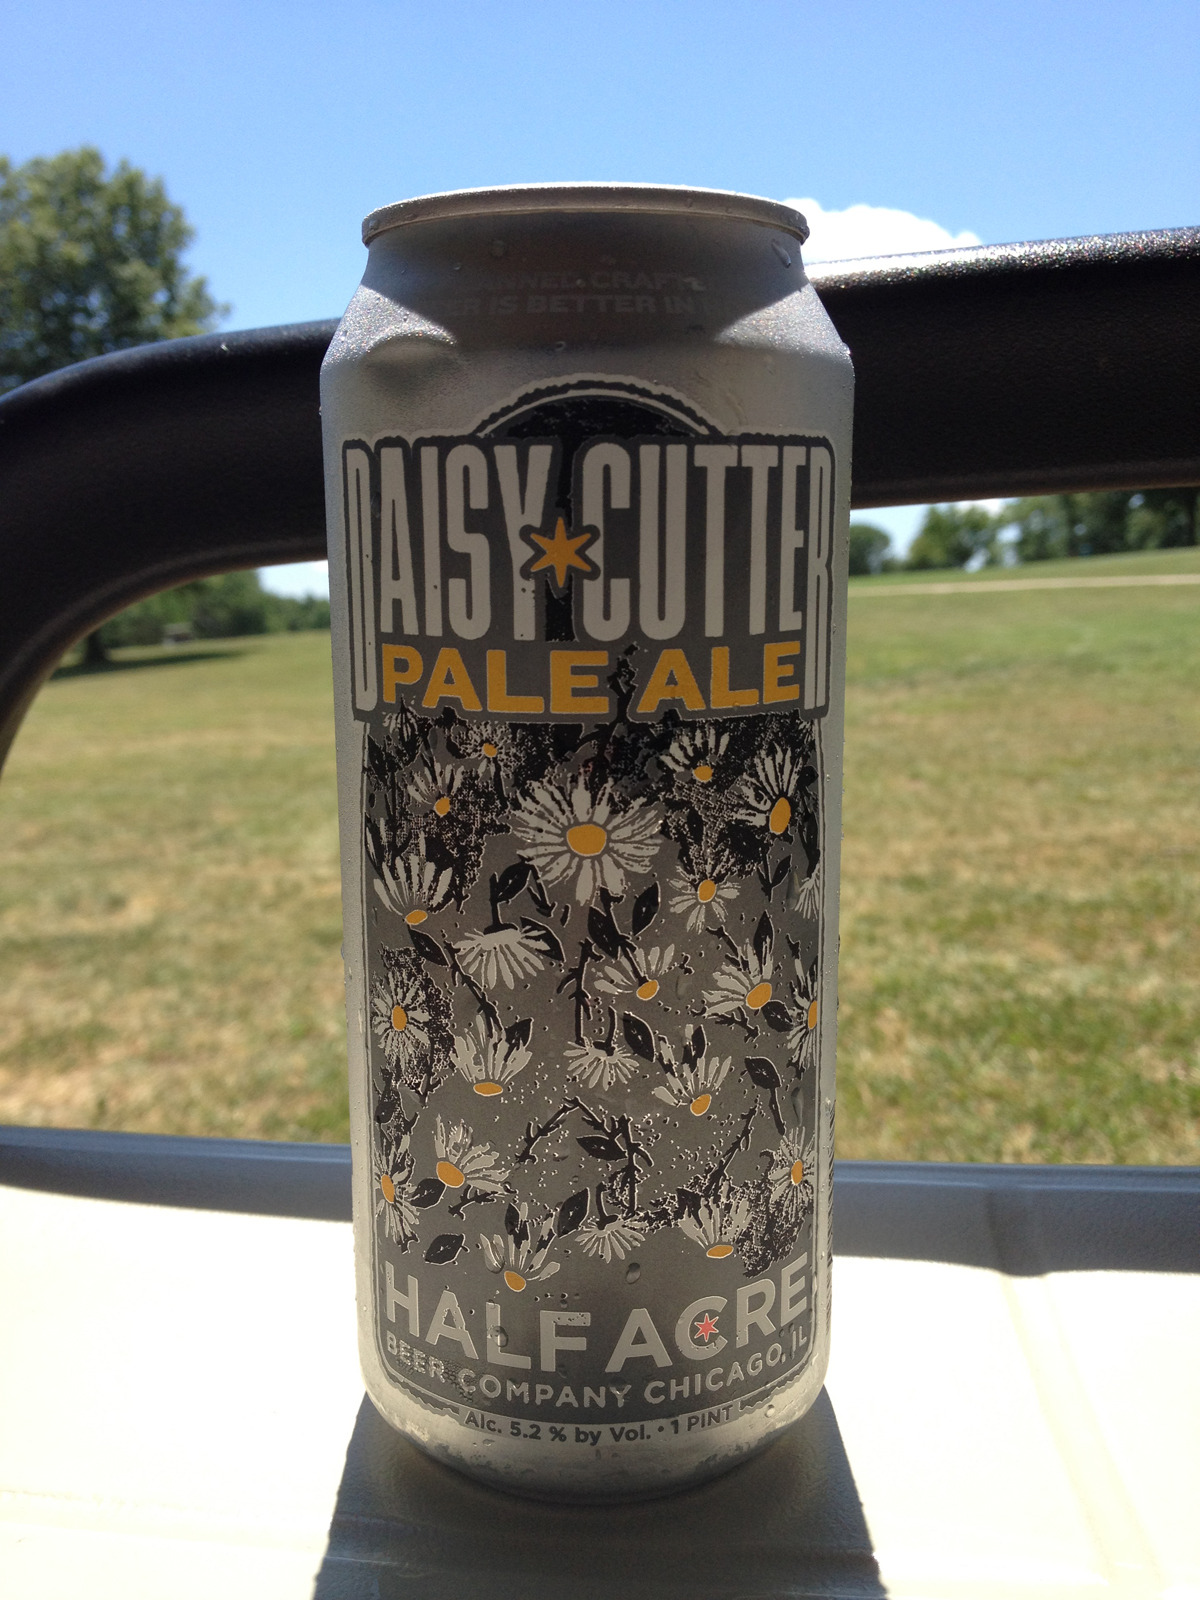 439. Half Acre Beer Company – Daisy Cutter Pale Ale As you could tell by my last few posts, I'm in Columbia, MO for a golf tournament.  We're out on the course and I've already had a Two Brothers Outlaw IPA my friend Joe brought back from a recent trip to Chicago.  He also brought back this one from Half Acre Beer Co.  It was hard to review it on the course, so Joe shared another can with me to take a little more time review later in the evening. Location: Enjoyed in the can at Lake of the Woods Golf Course in Columbia, MO. Numbers: 5.2% ABV, ~ 160 Calories Appearance & Aroma: When I poured it in a glass, it was dark golden in color with some orange hues, and slightly hazy.  It had a big foamy head on it, which stuck around for a bit and left some very nice lacing on the glass as I drank it.  There was a nice, big grapefruit aroma with some resiny and piney notes. Taste & Feel: The body was light-medium and the mouthfeel was smooth with a bit of crispness on the end of each sip from the hops.  There was a quick moment where I tasted… (More on Half Acre Beer Company – Daisy Cutter Pale Ale)